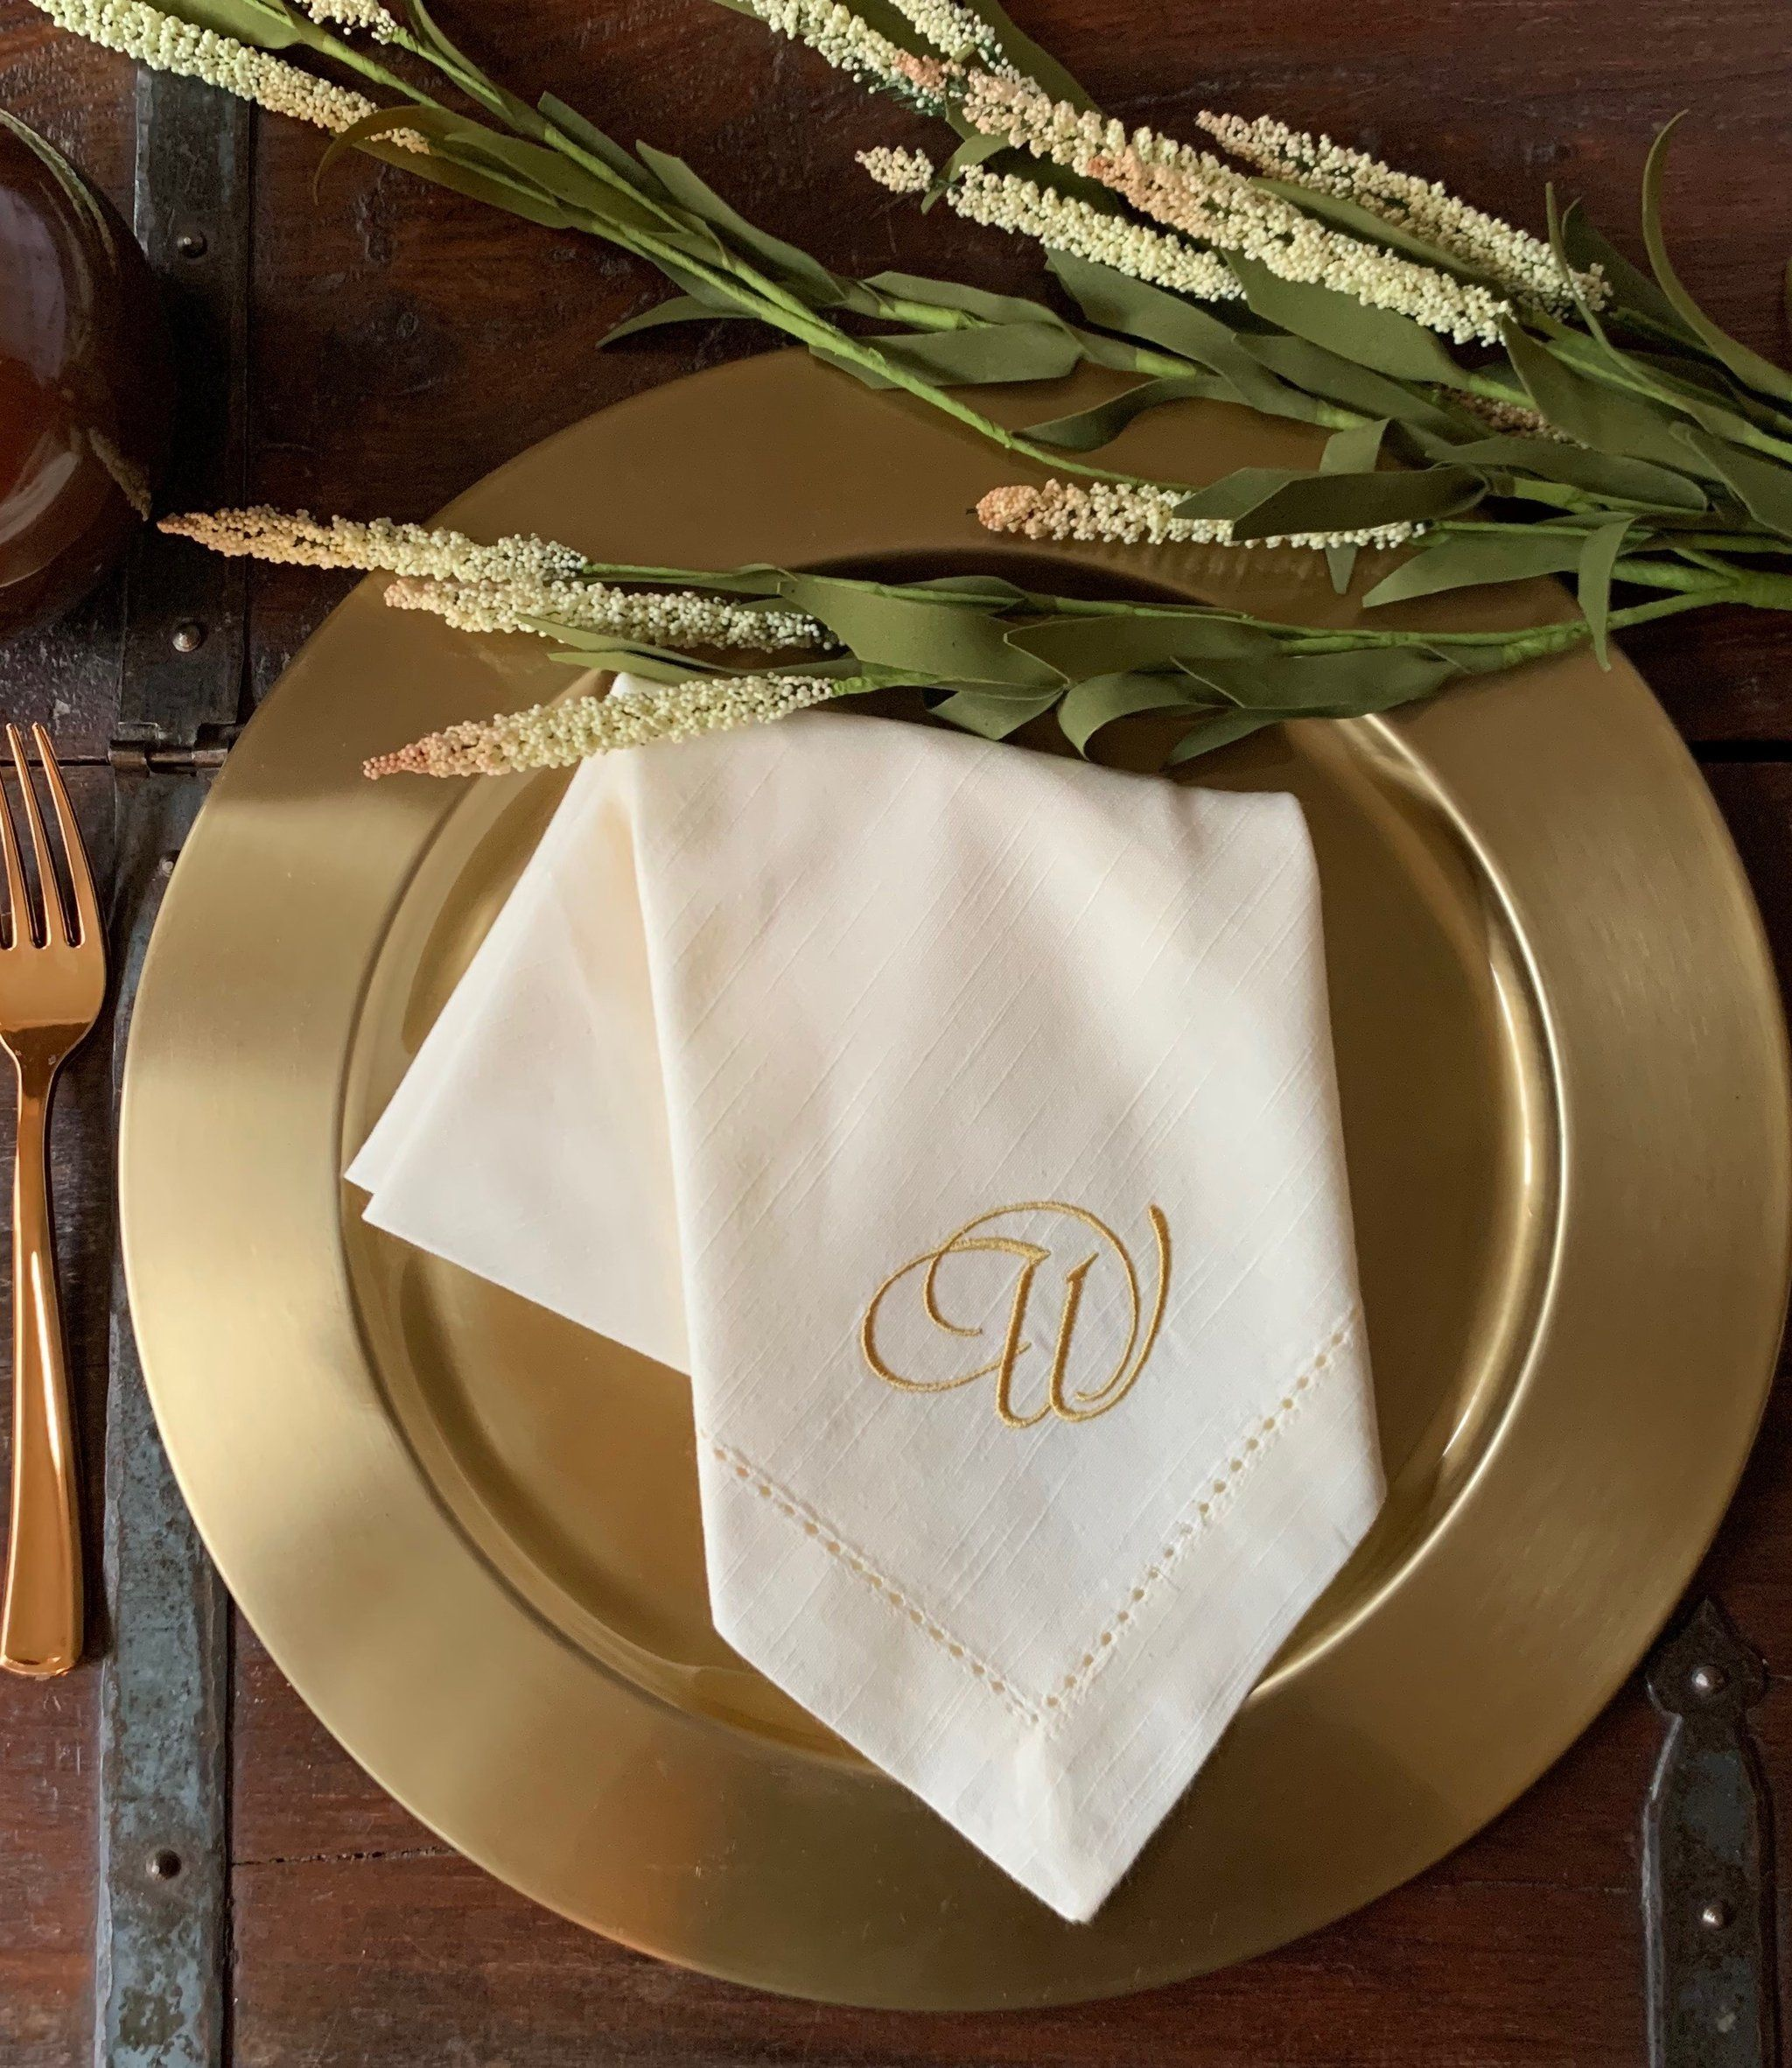 Formal Style Monogrammed Cloth Dinner Napkins Set Of 4 Napkins White Tulip Embroidery In 2020 Cloth Dinner Napkins Napkins Set Napkins